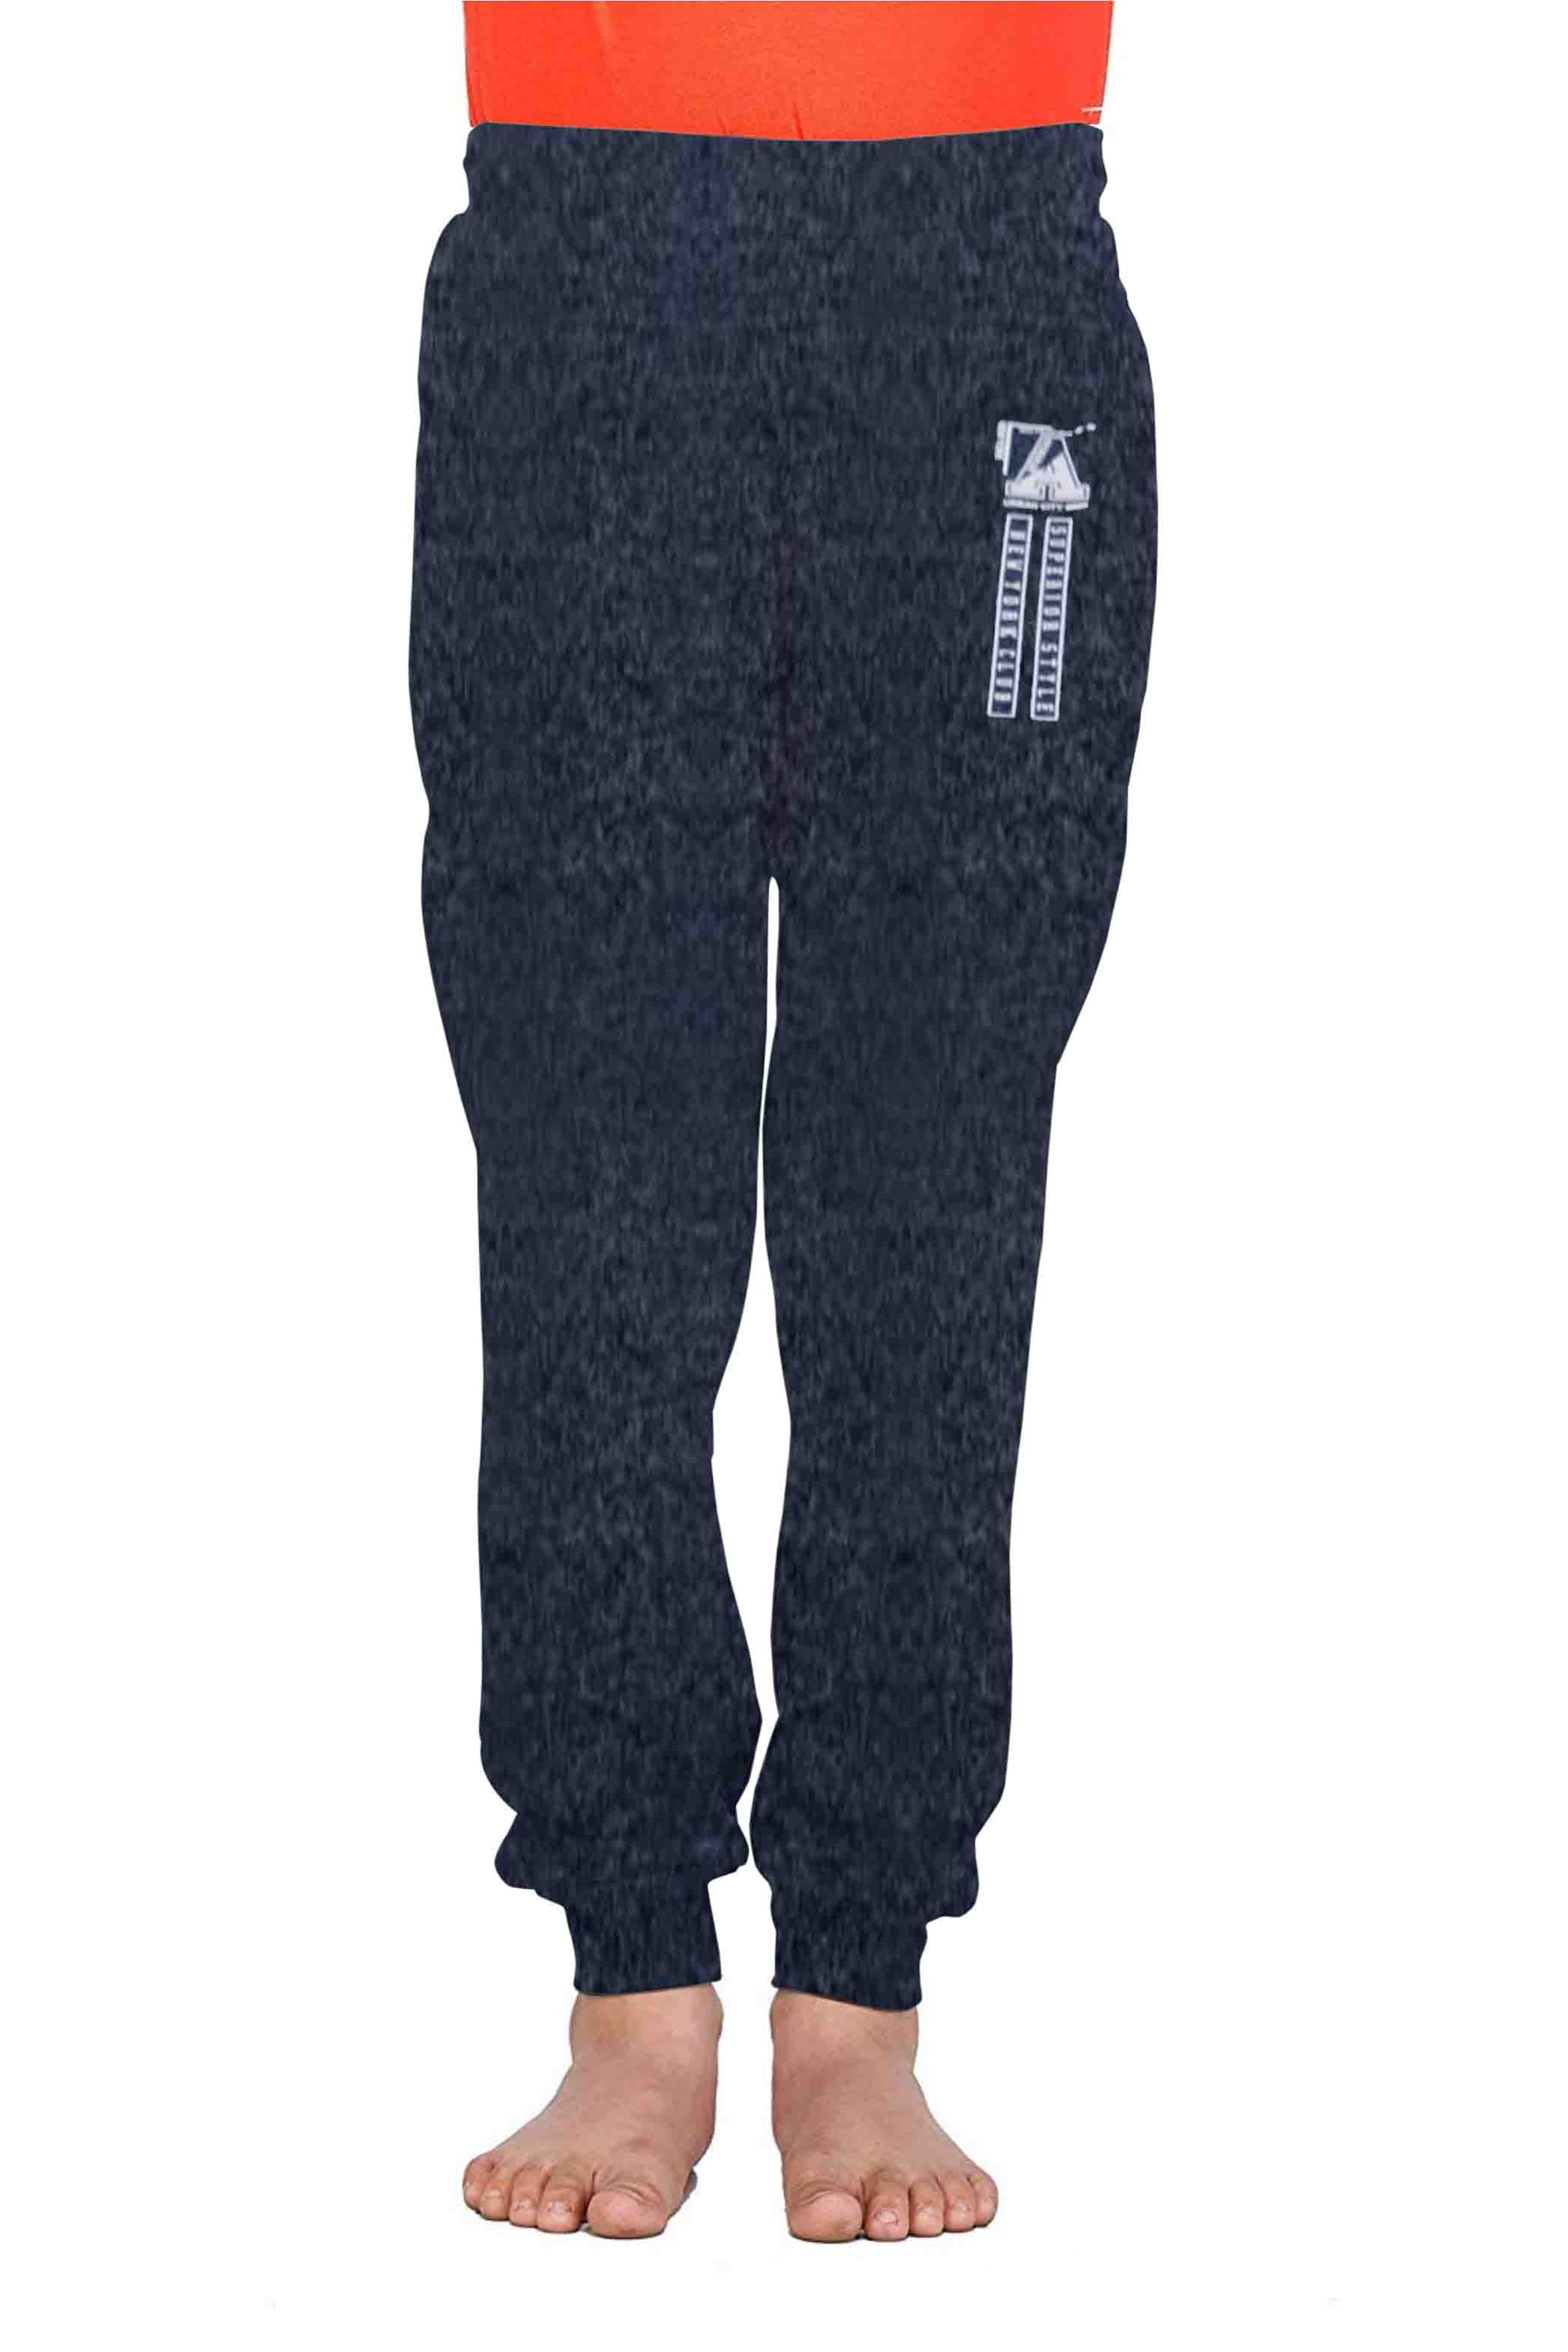 KL SH 2019-NAVY MELANGE-KIDS LOWER